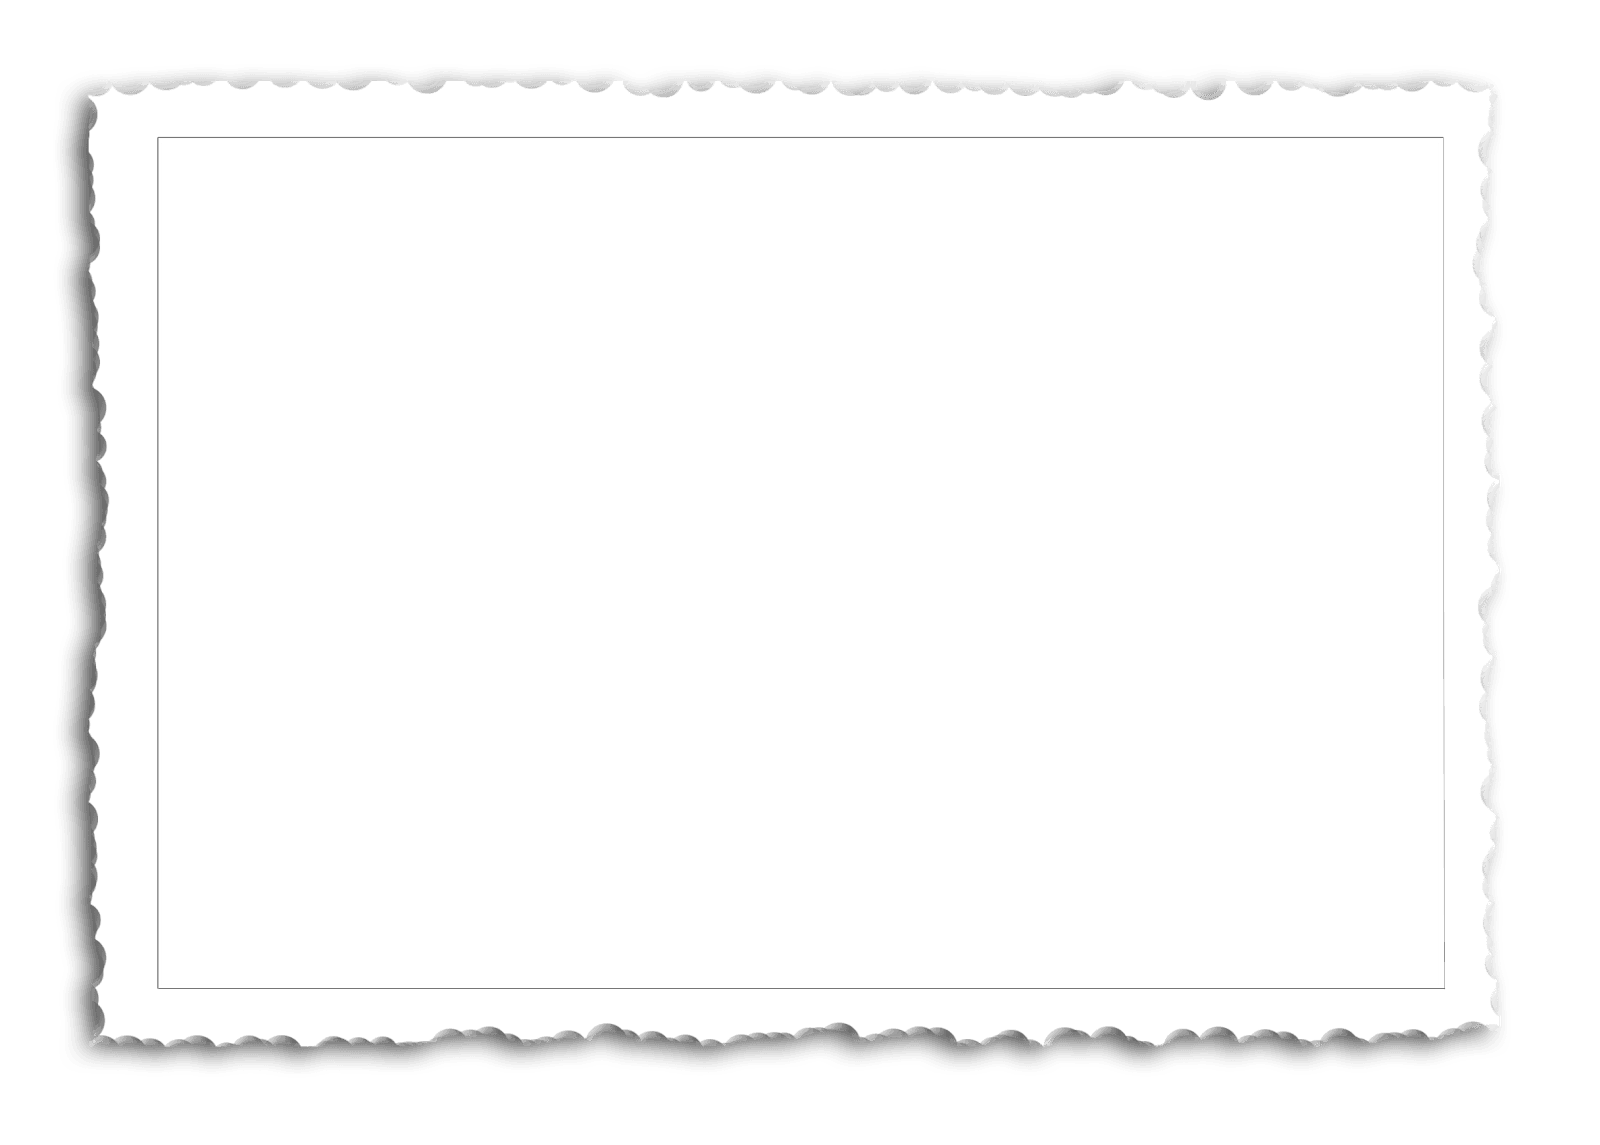 Paper Area Rectangle Square Picture Frames - white frame 1600*1145 transprent Png Free Download - Picture Frame, Square, Area.